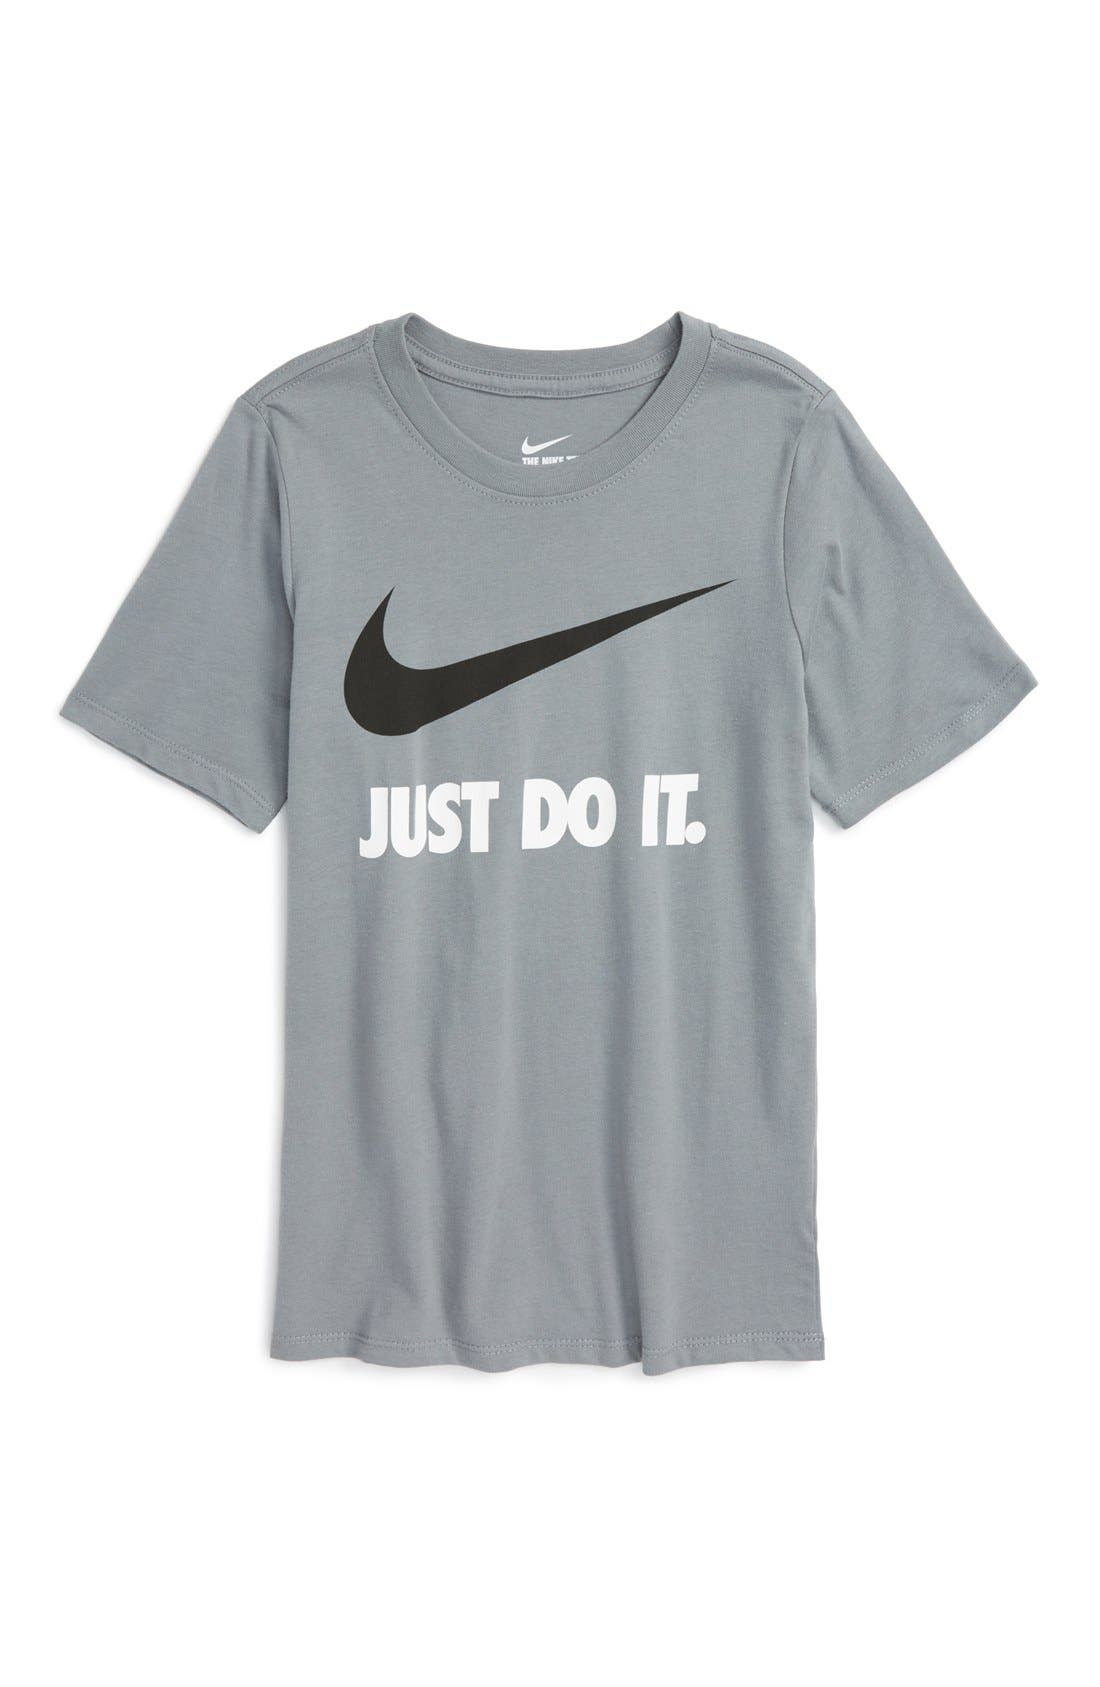 Main Image - Nike Just Do It Cotton T-Shirt (Little Boys & Big Boys)